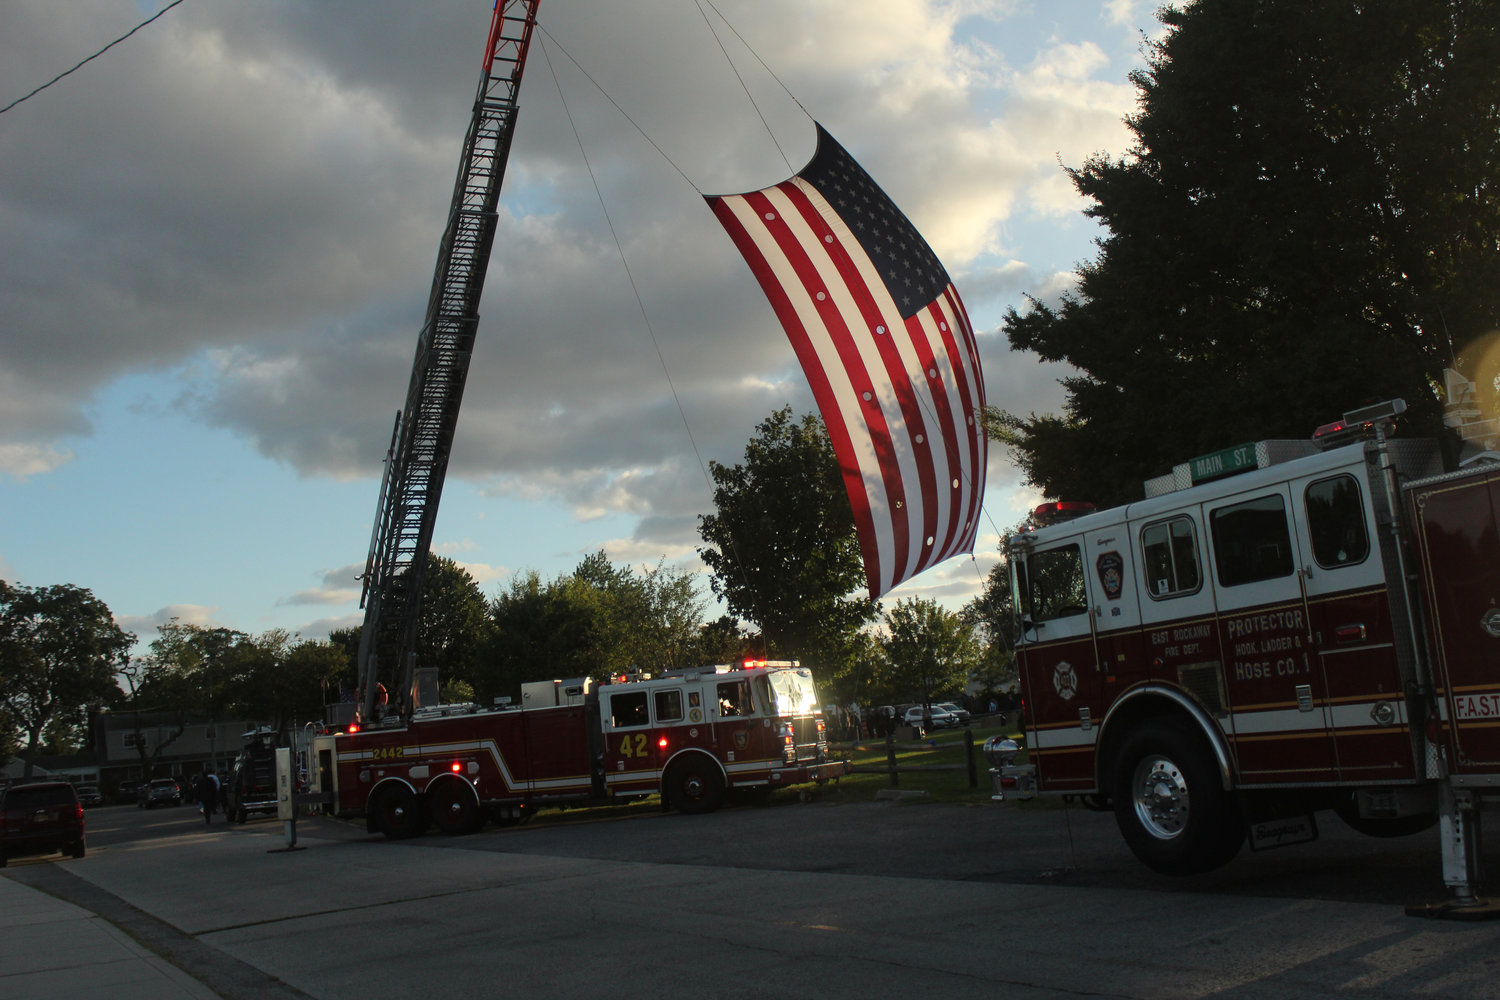 An American flag flew in memory of the late Luis Alvarez when the Oceanside community memorialized him last Friday.